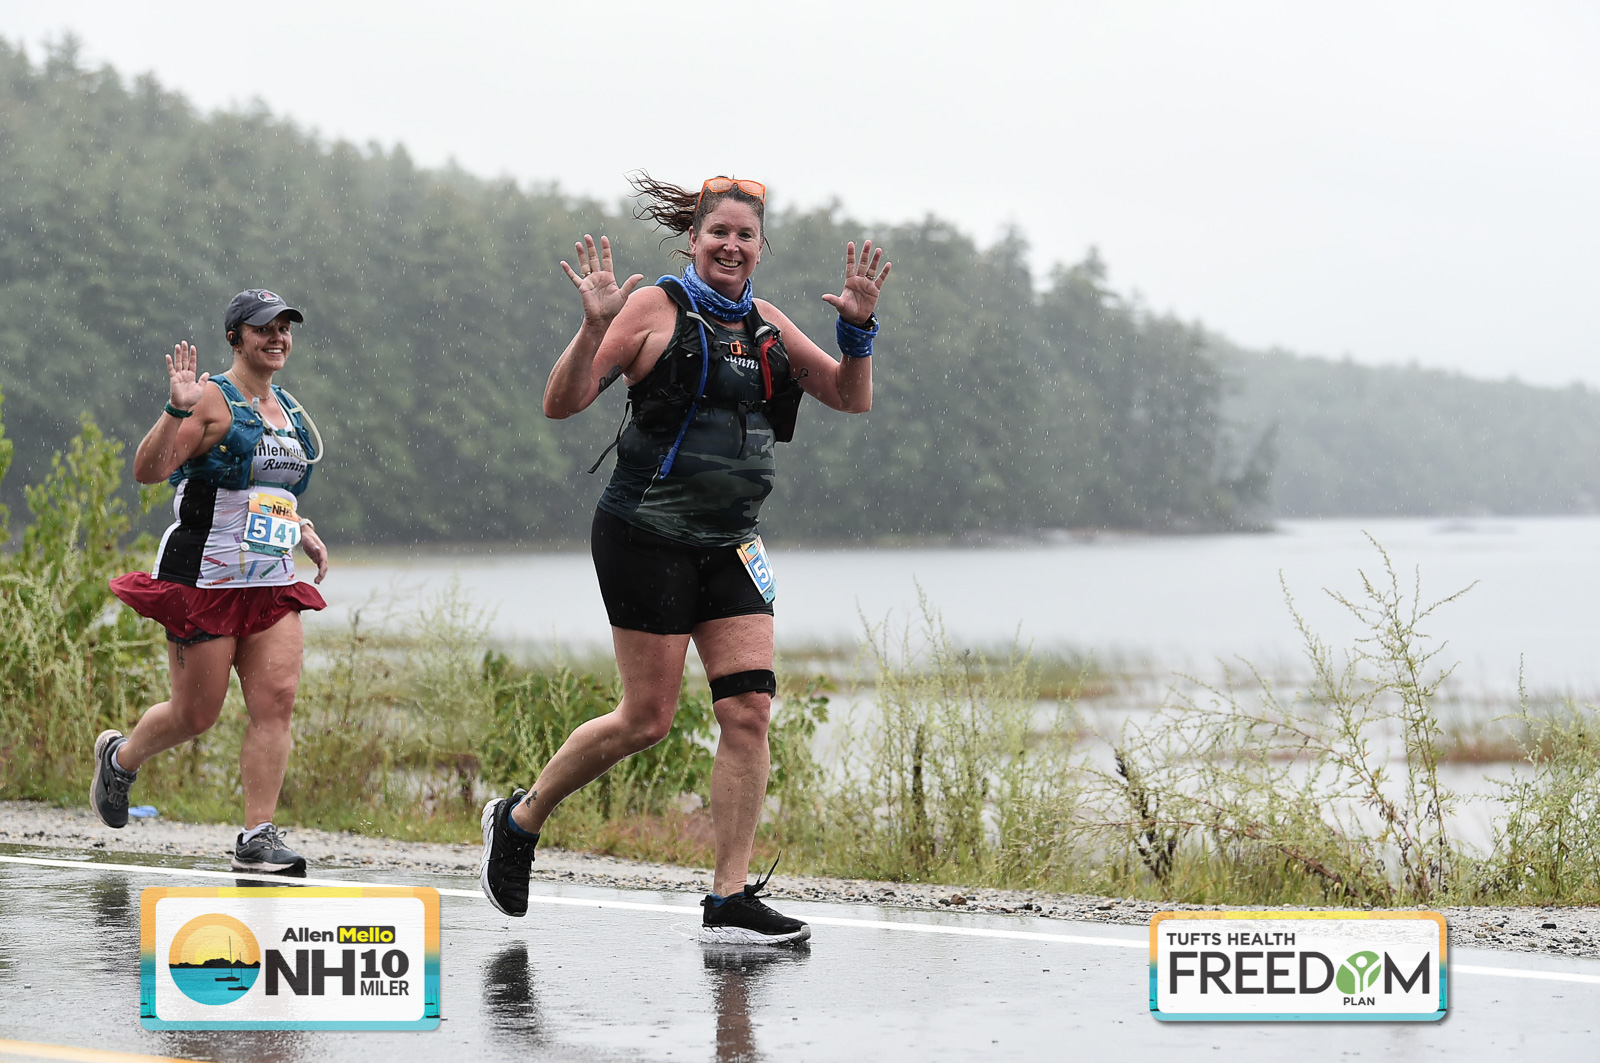 PHOTOS: Allen Mello NH 10 Miler – 2020